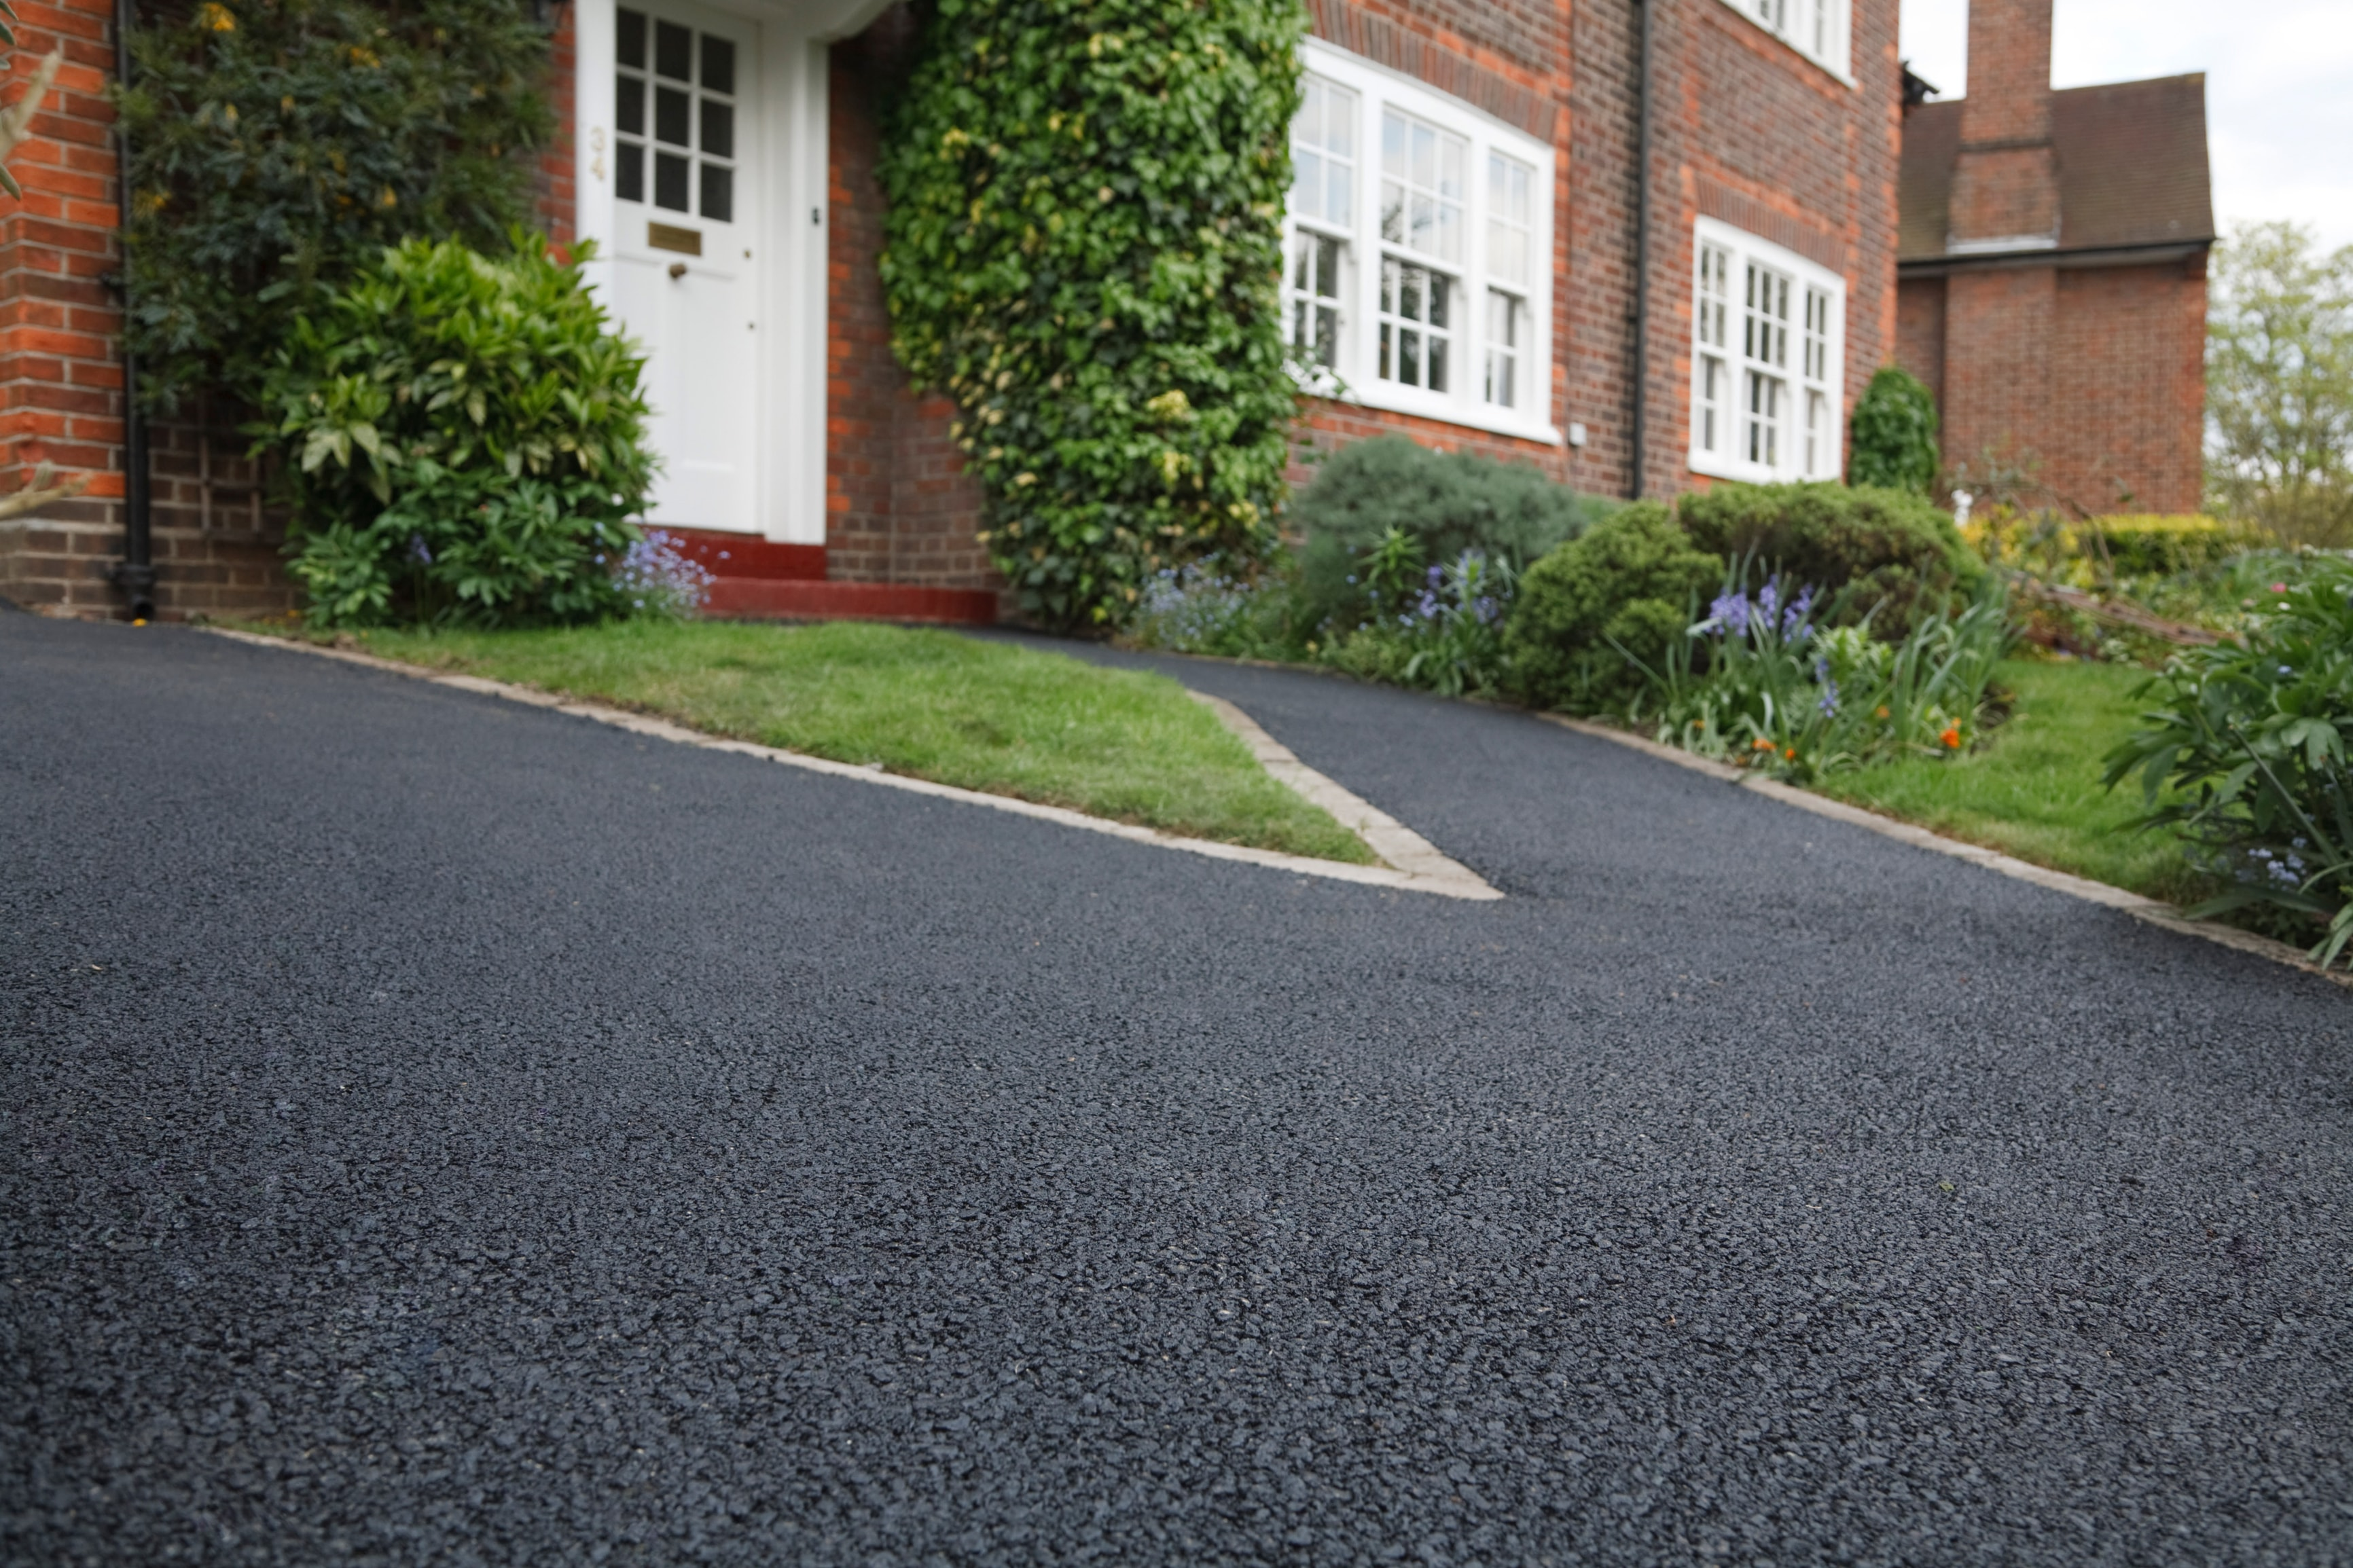 Tarmac Concrete Or Block Paving Birmingham Driveway - Front garden driveway ideas uk